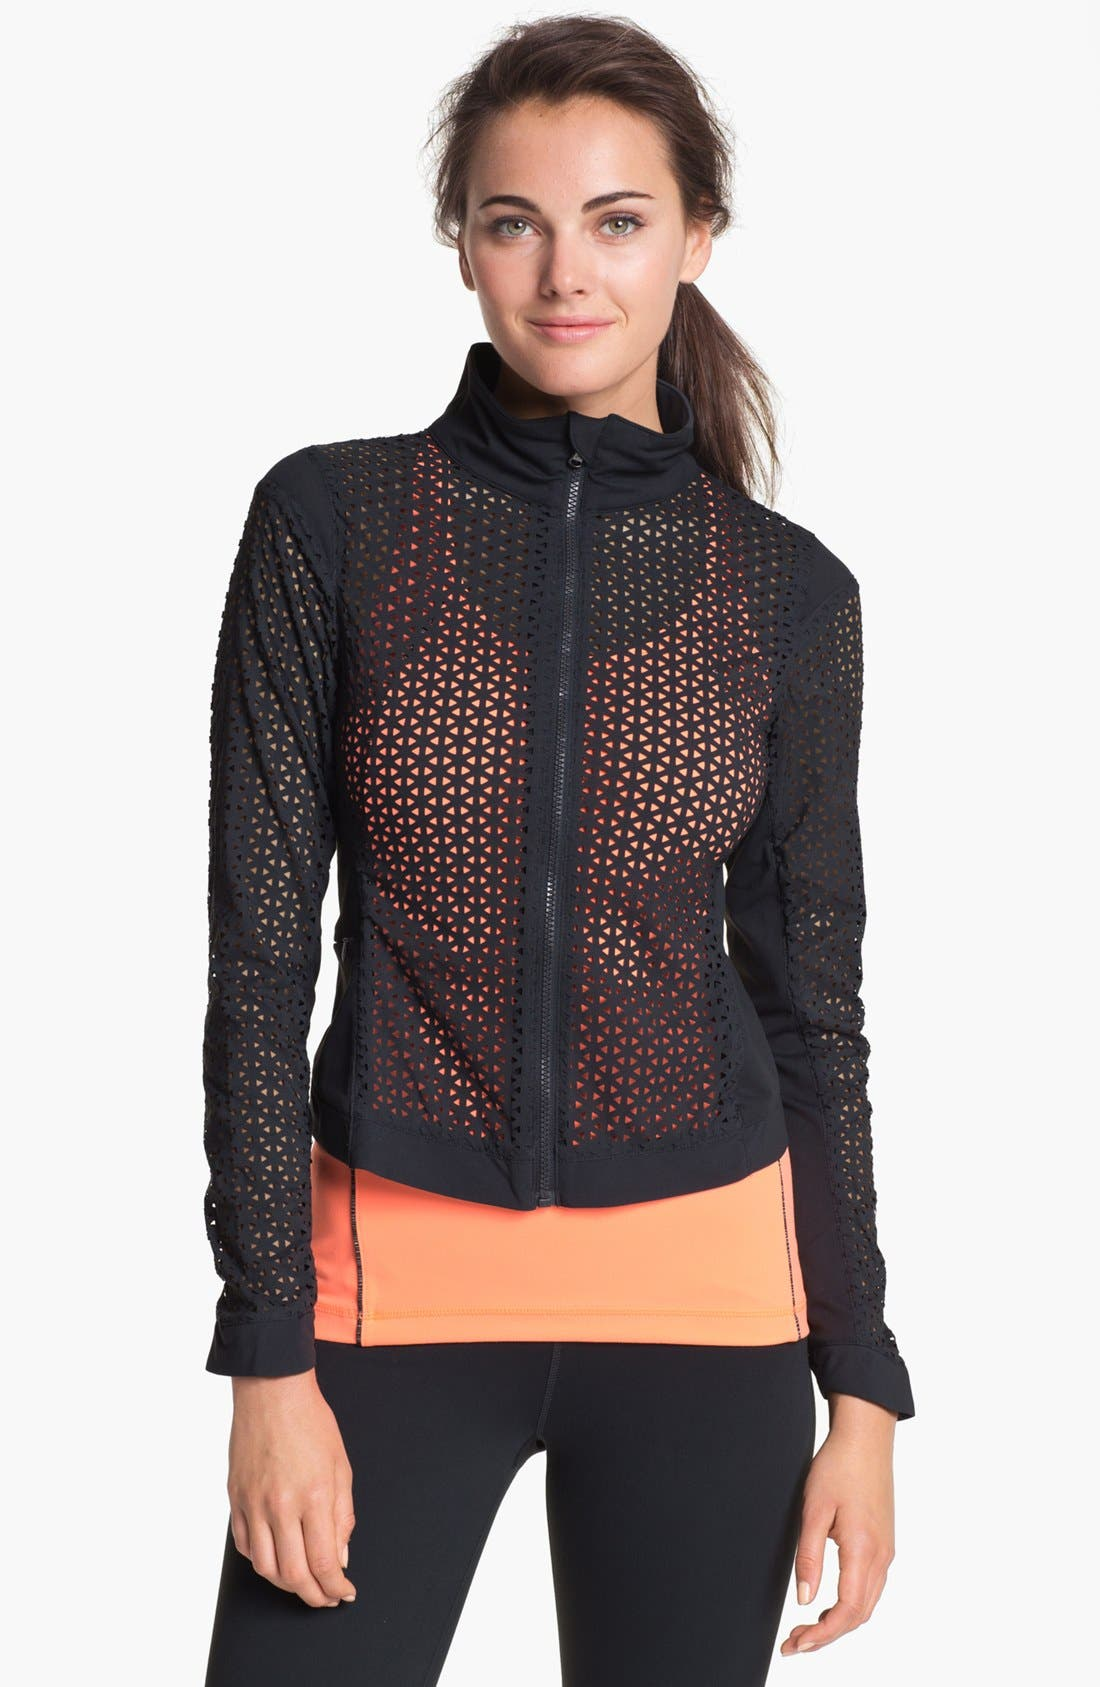 Alternate Image 1 Selected - Under Armour 'See Me Though' Jacket